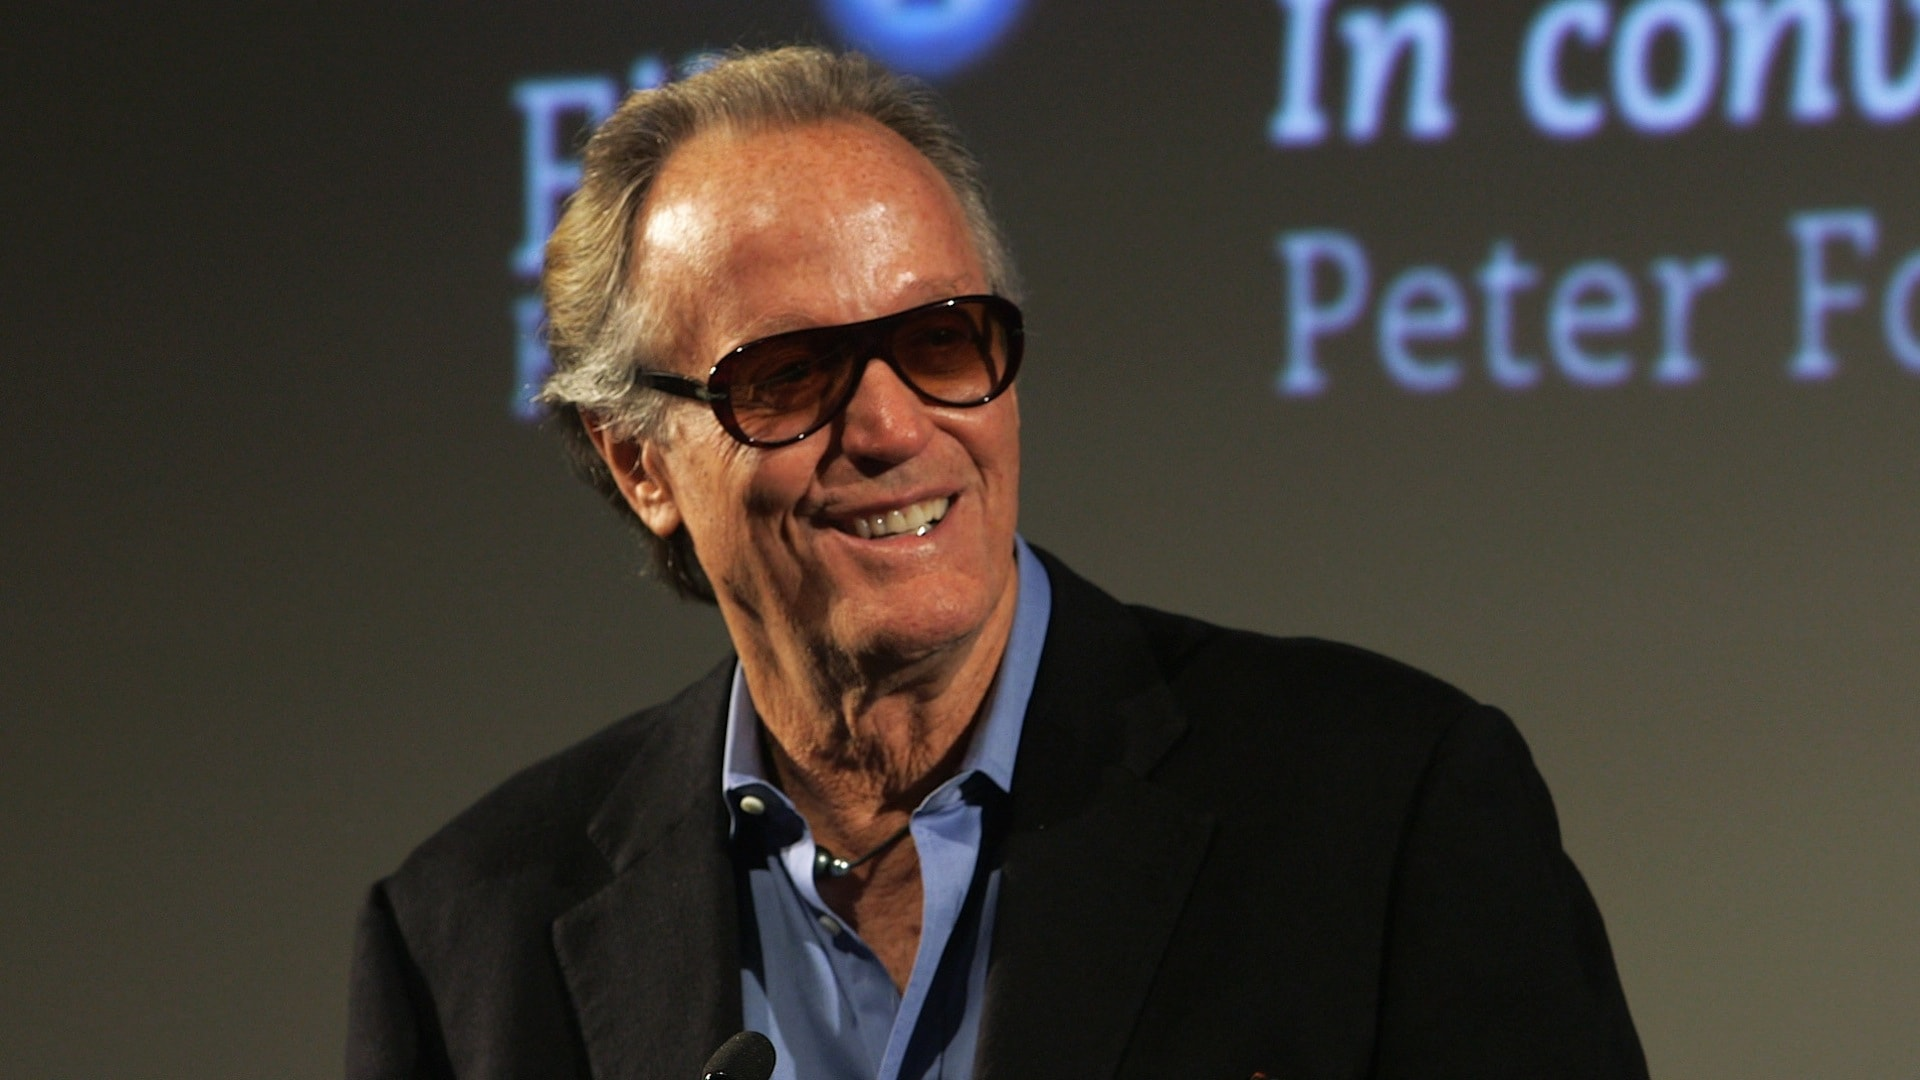 Peter Fonda widescreen wallpapers